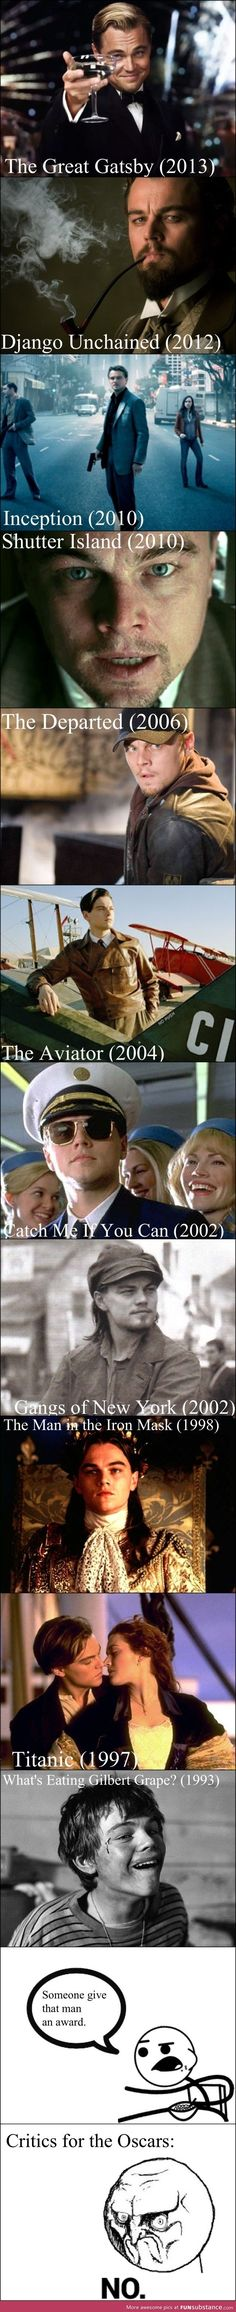 Leonardo Dicaprio is a great actor